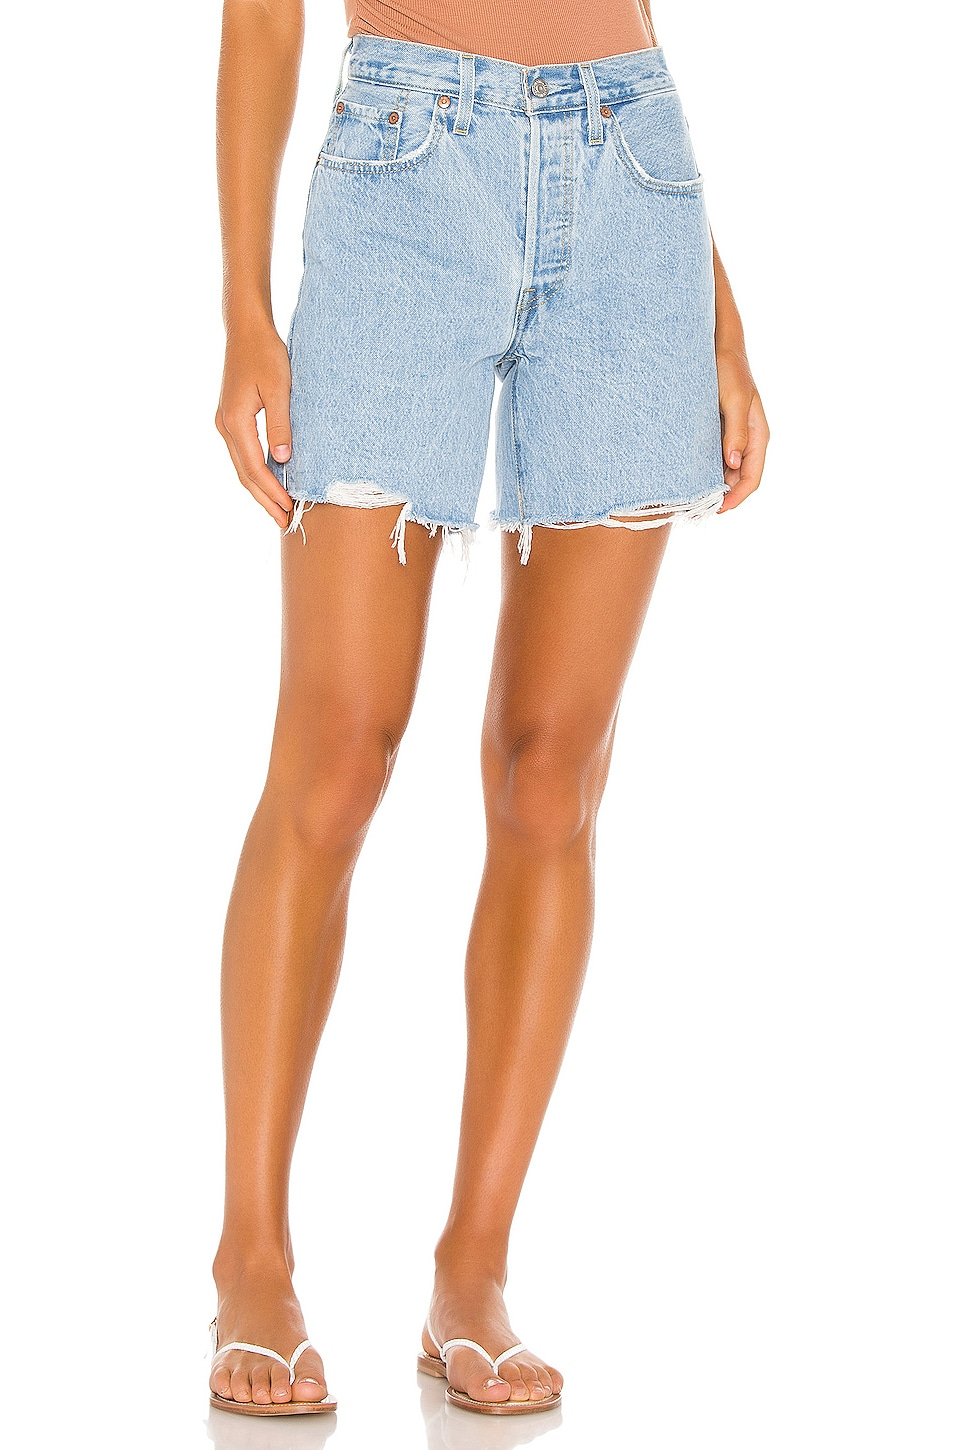 501 Mid Thigh Short             LEVI'S                                                                                                       CA$ 94.58 14